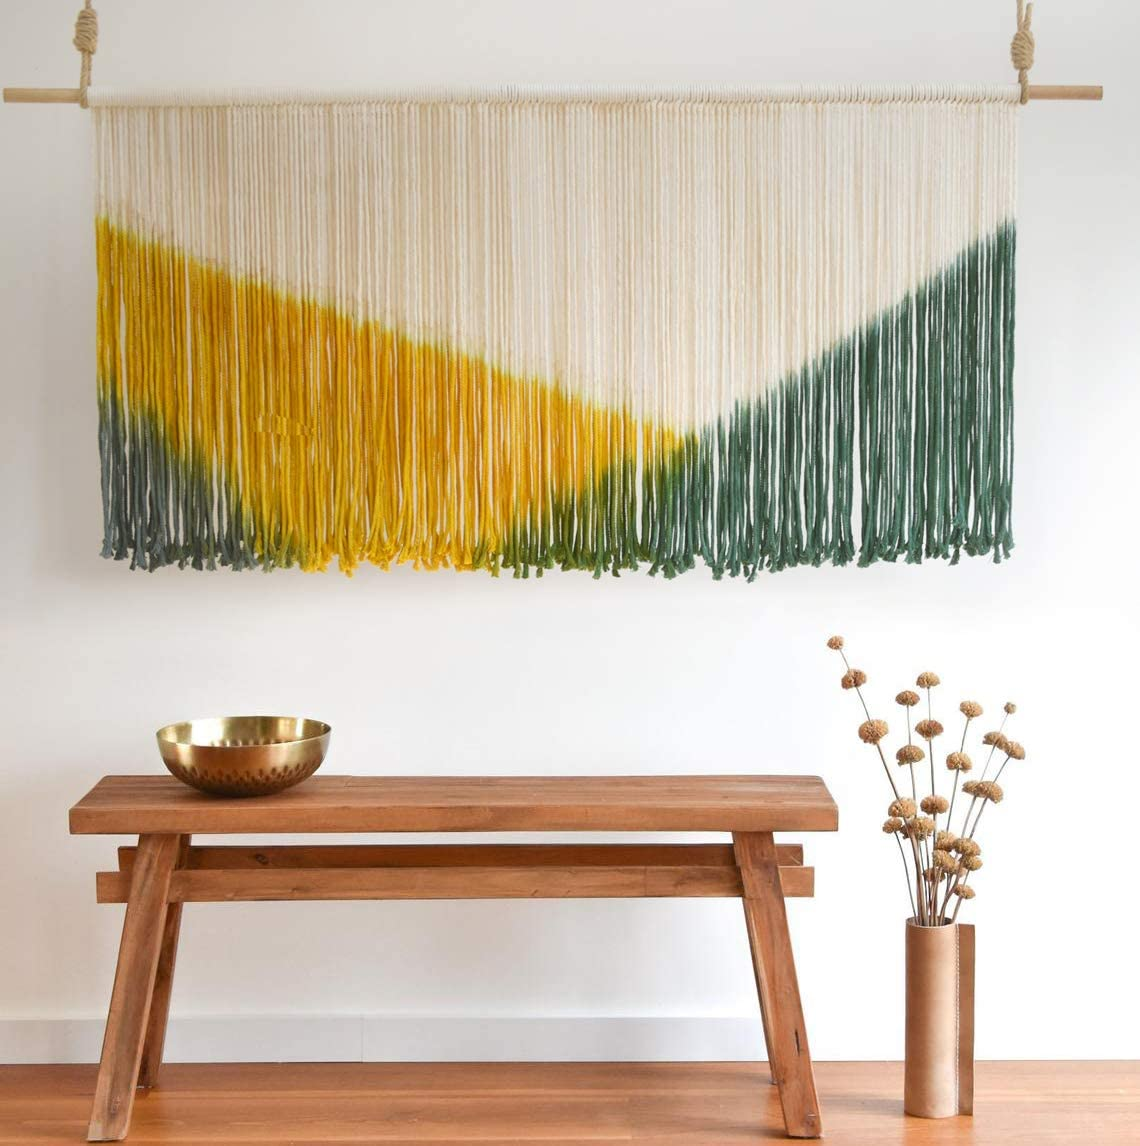 Flber Large Wall Hanging Tie-Dye Yarn Tapestry Geometric Colorful Bohemian Wall Décor 59